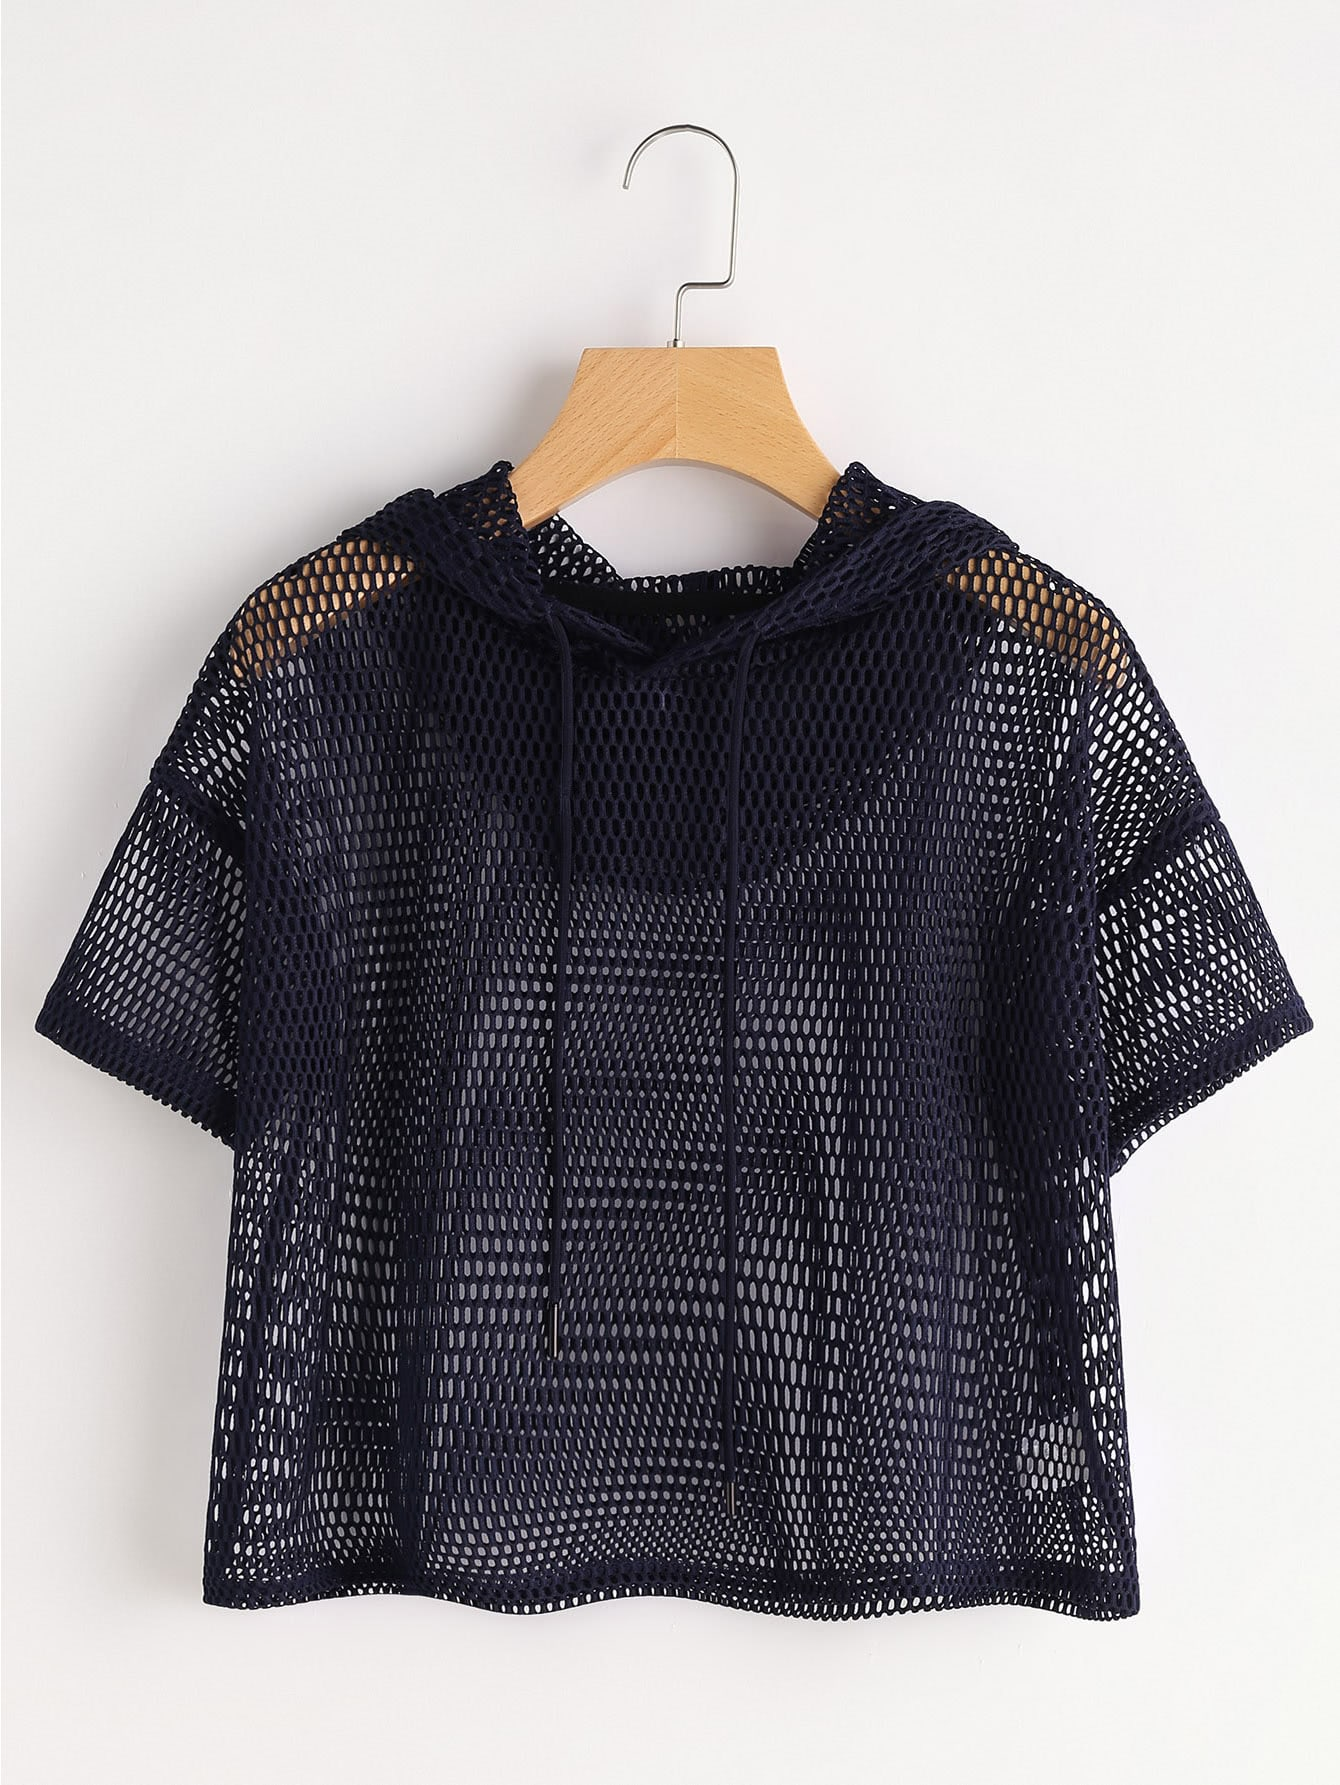 Drop Shoulder Crop Fishnet Hooded Top fishnet tights with crop top